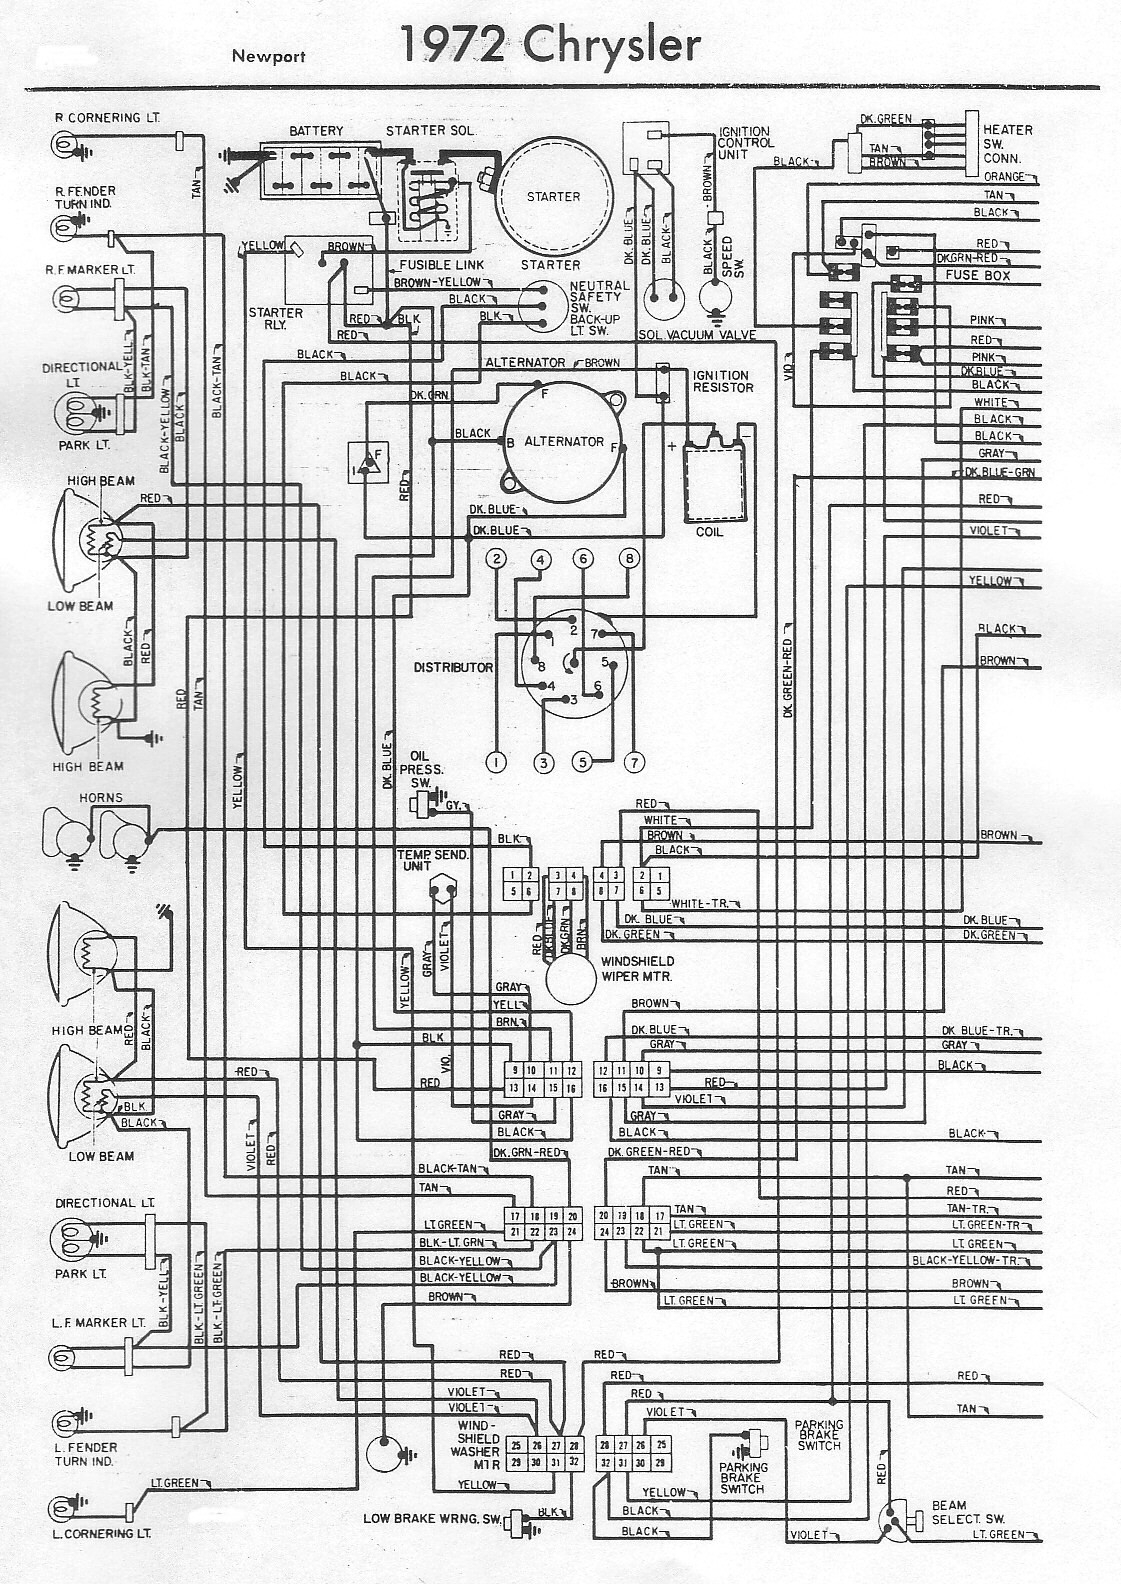 small resolution of 1966 chrysler 300 wiring diagram trusted wiring diagrams u2022 rh sivamuni com 2008 chrysler 300 ignition